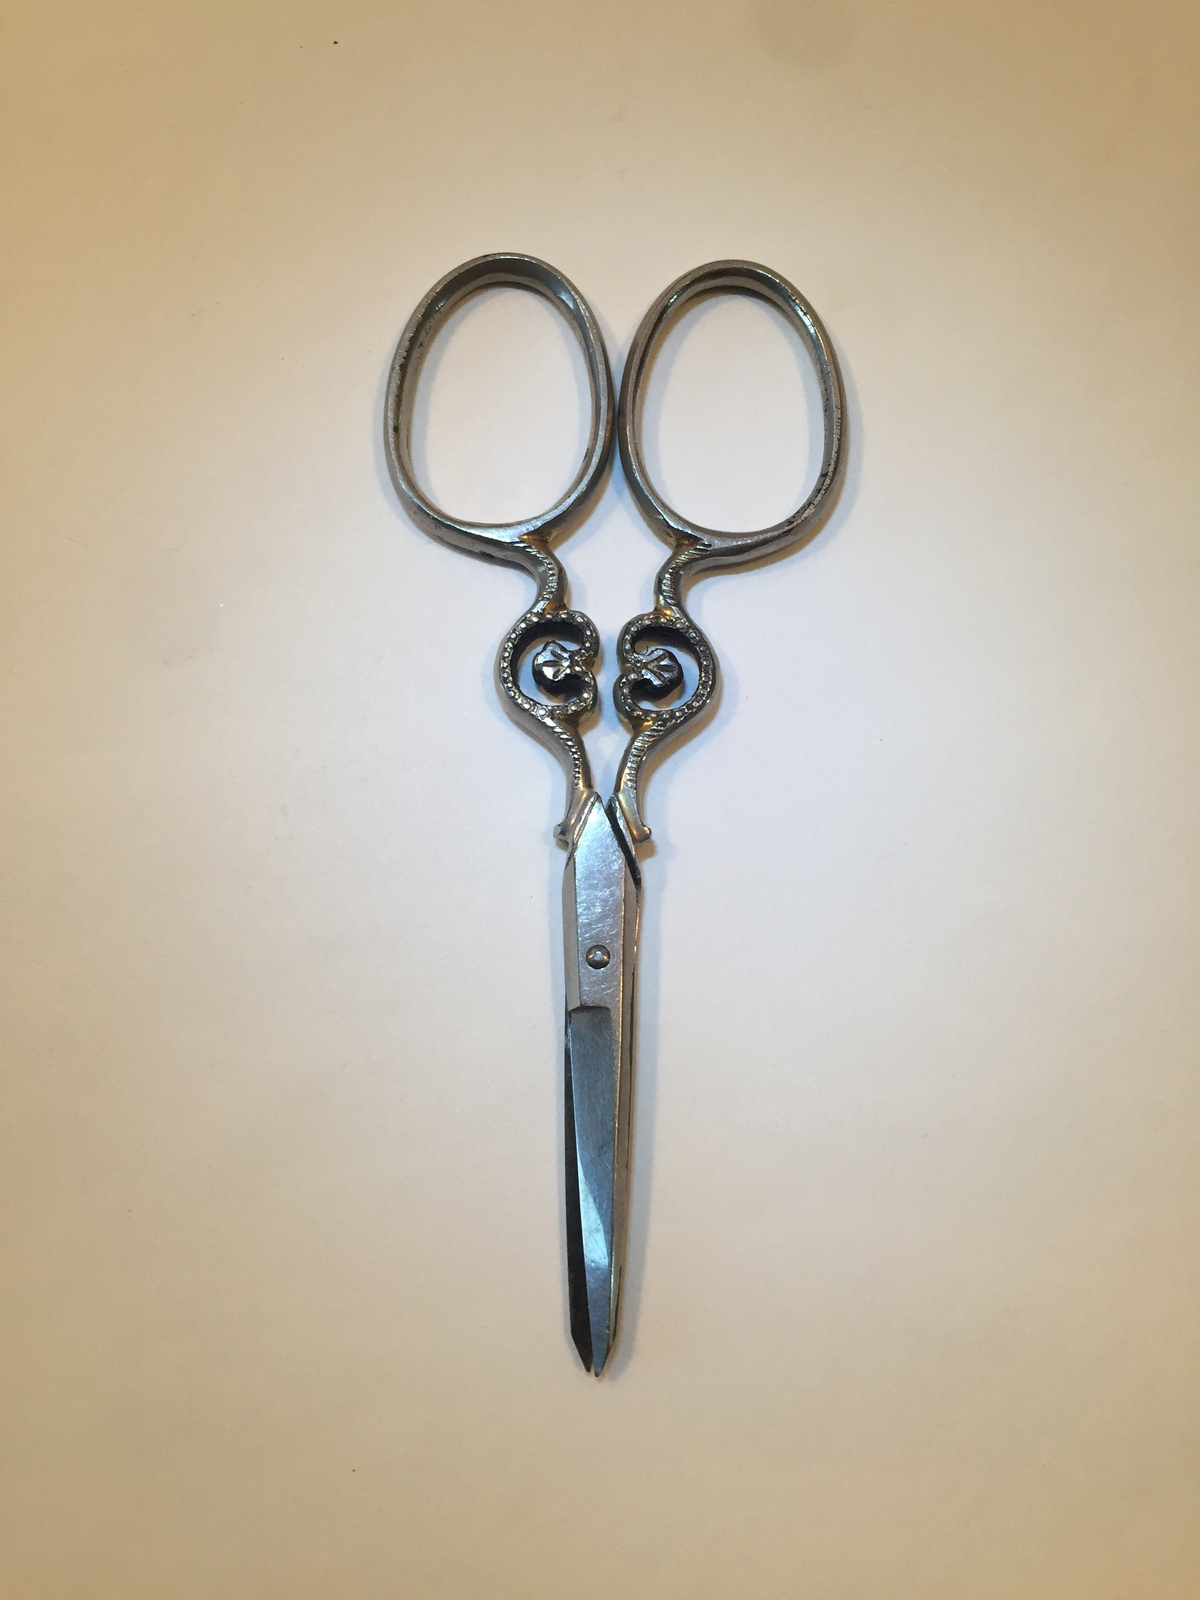 "Vintage Sears Prussia 3.5"" sewing/embroidery scissors"